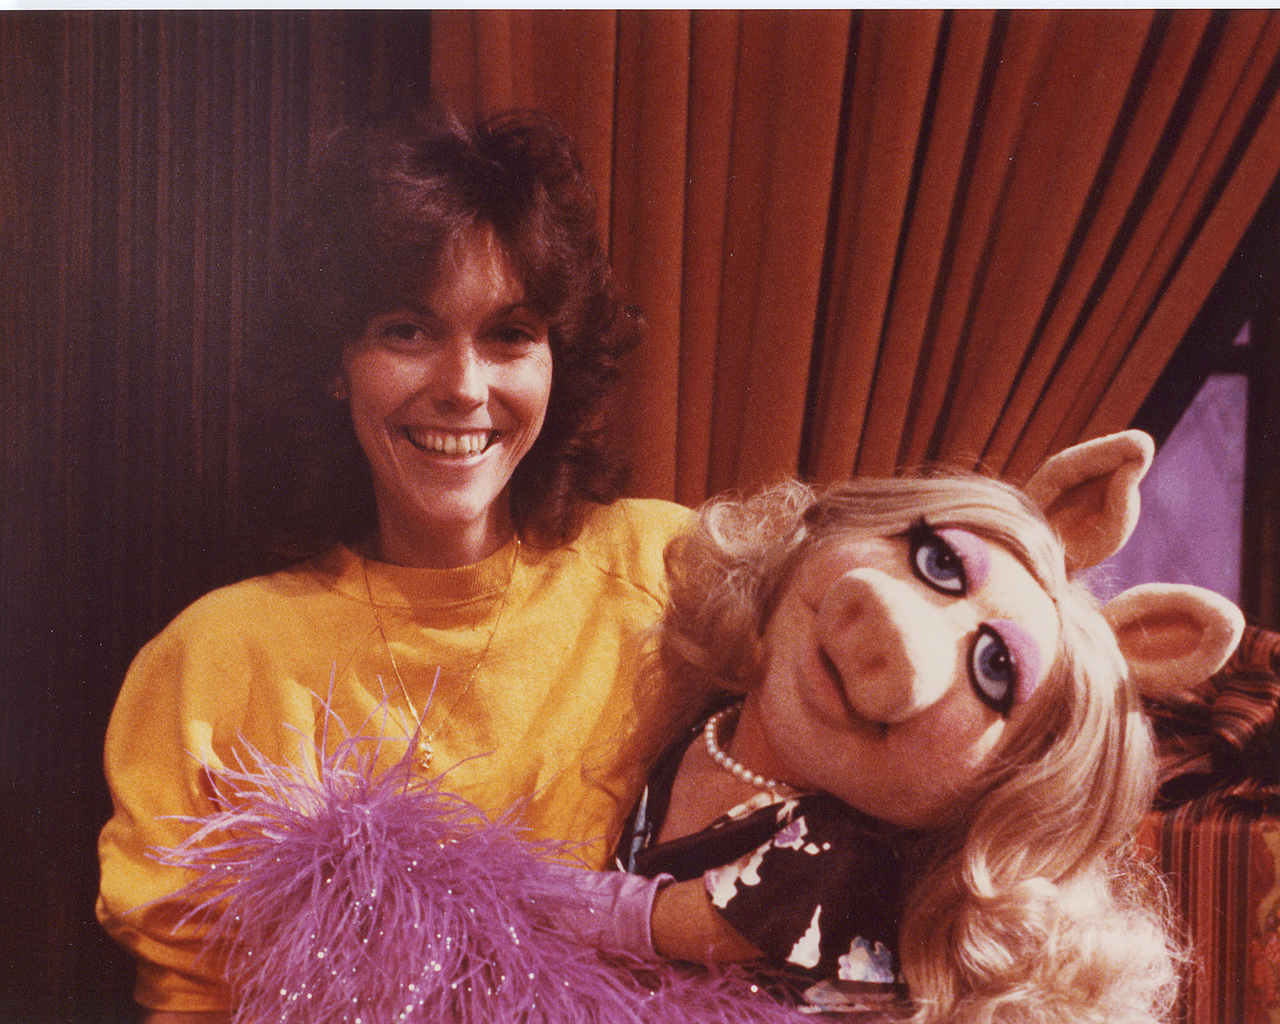 The Carpenters | Muppet Wiki | FANDOM powered by Wikia